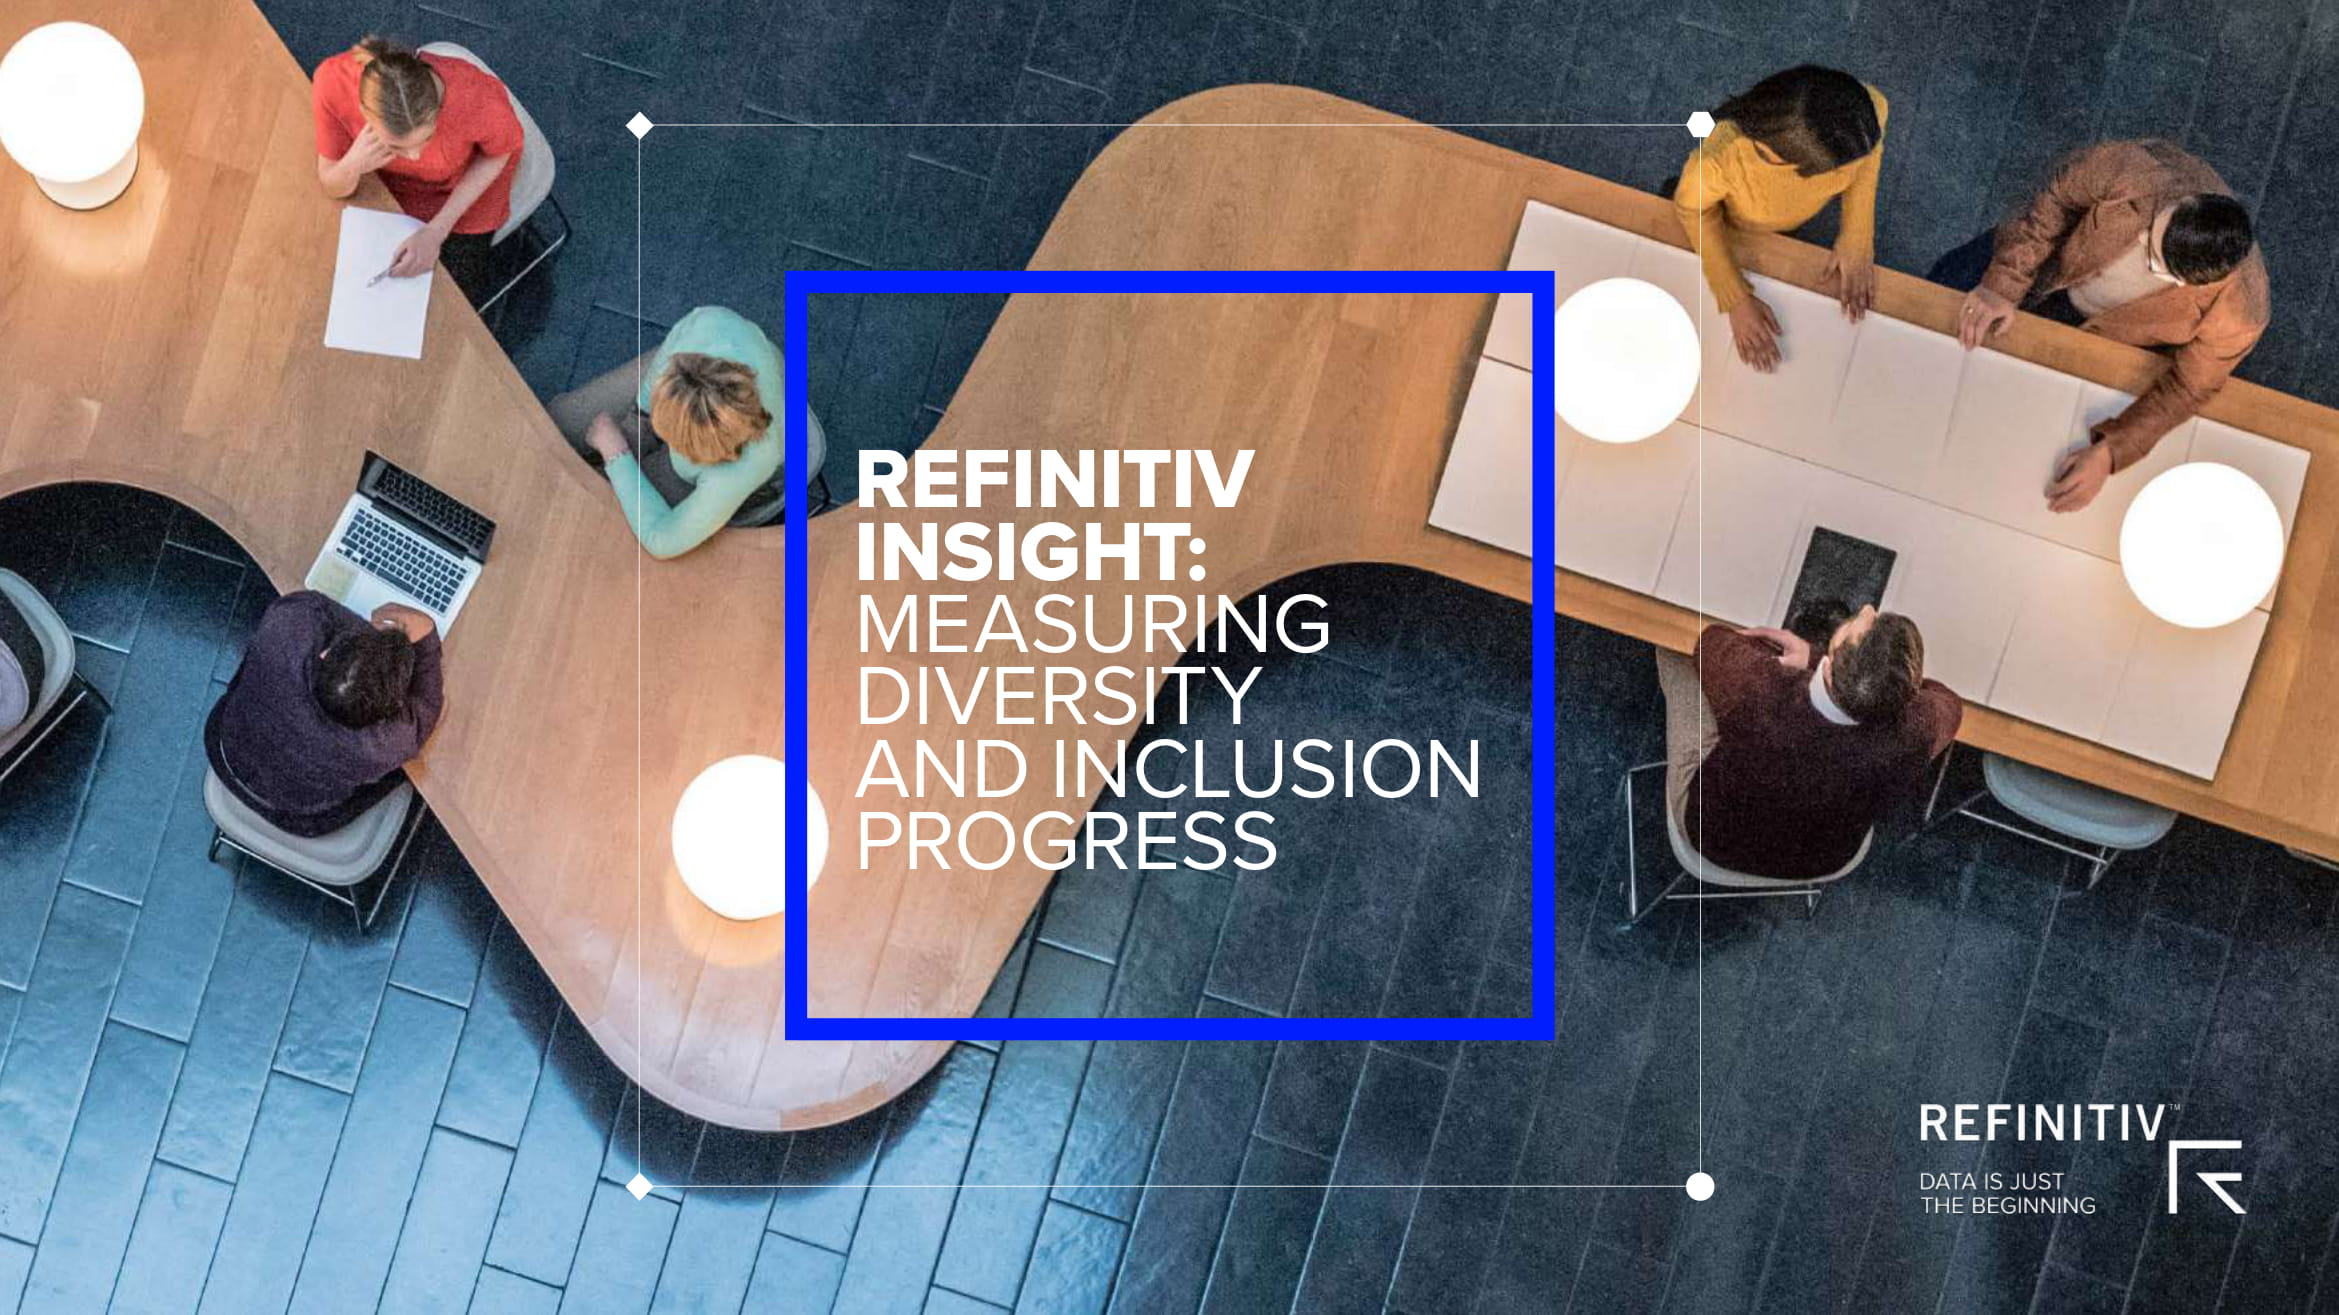 Measuring diversity and inclusion progress 01